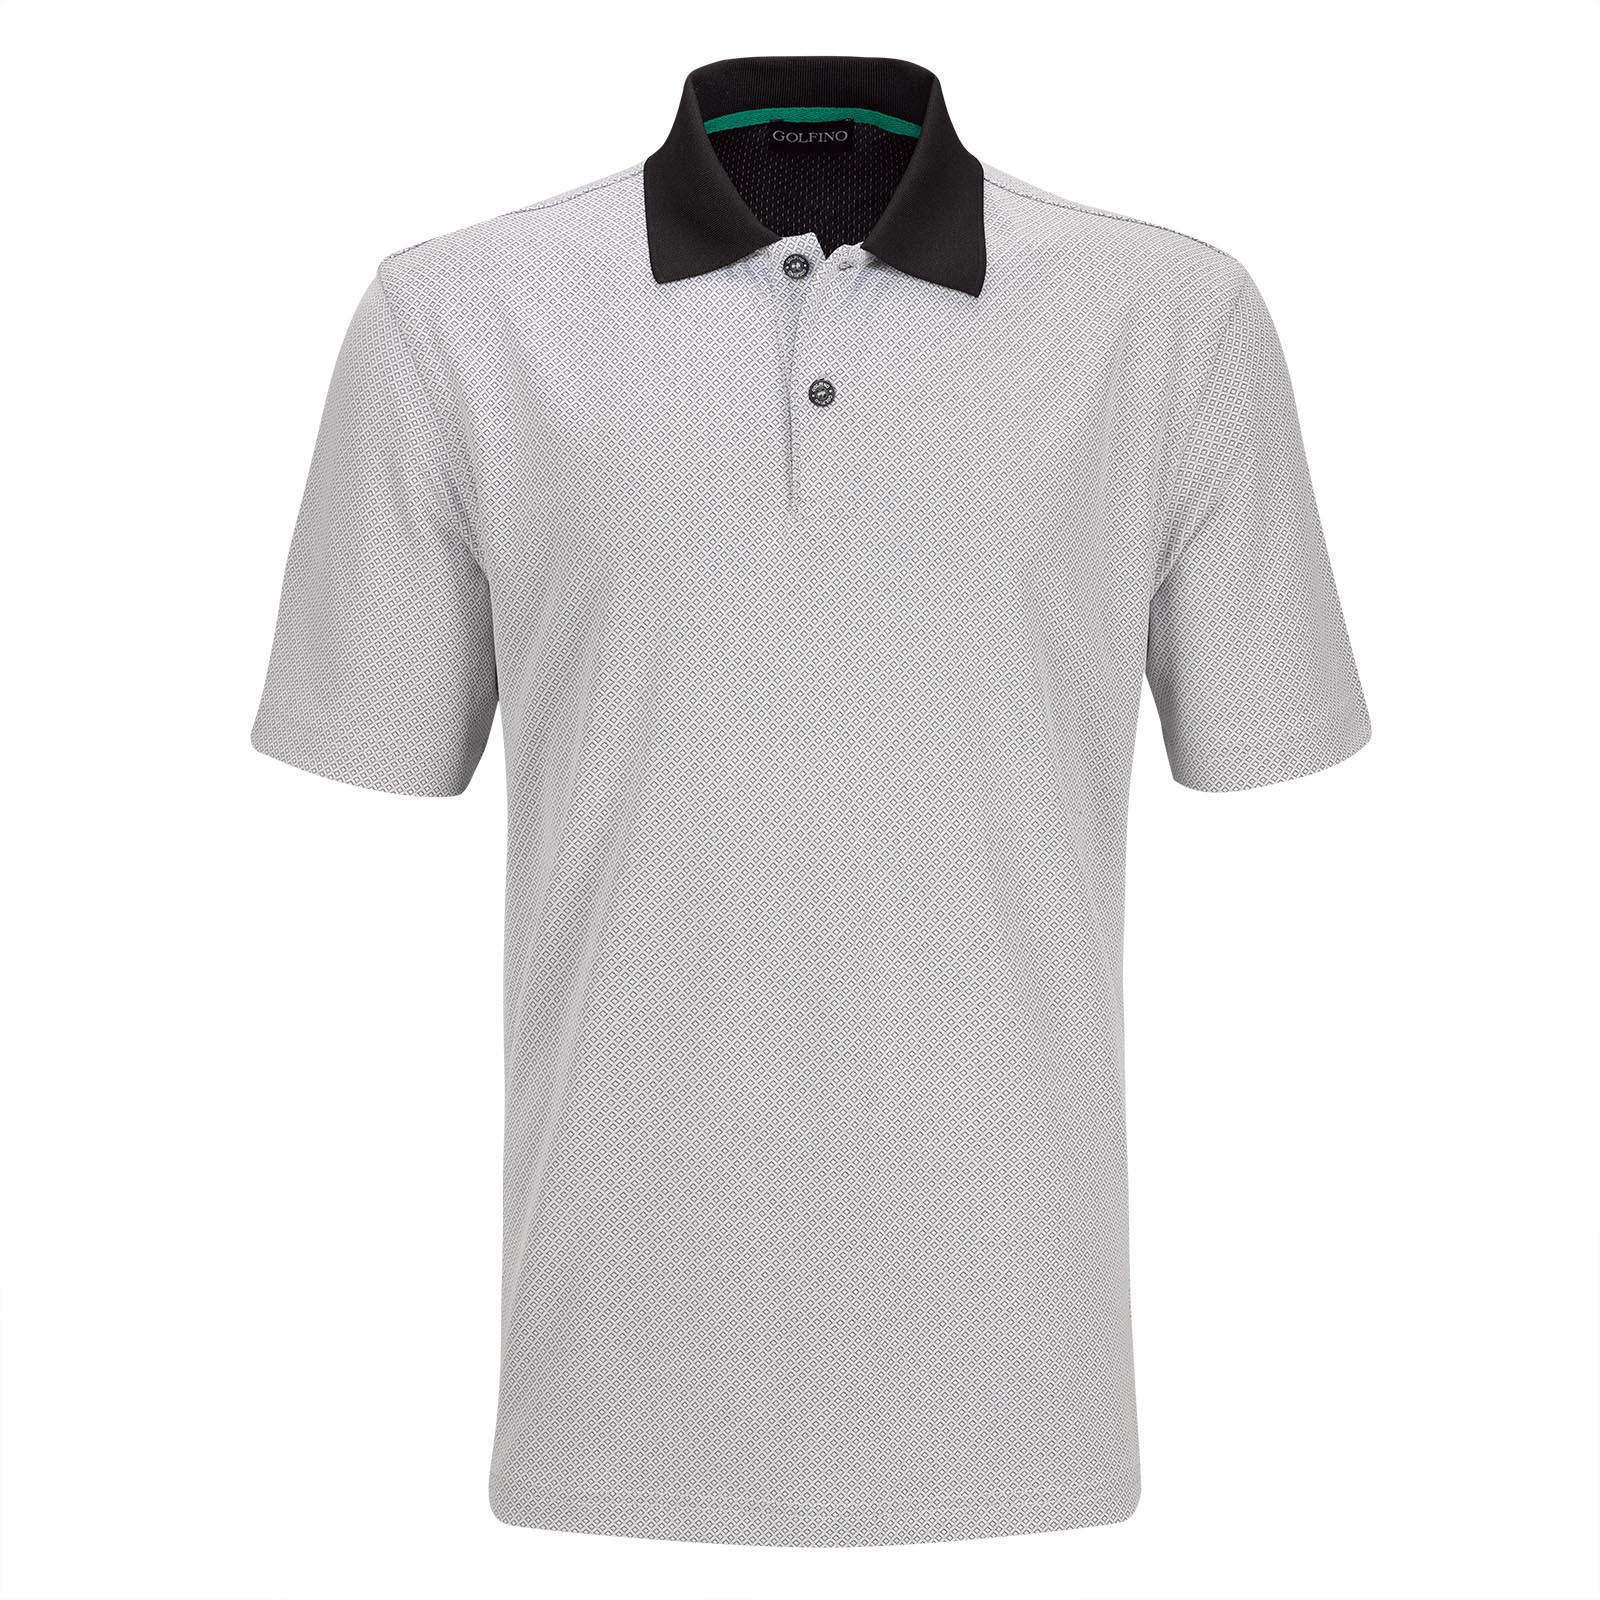 Casual Quick Dry Kurzarm Herren Golf-Piqué mit edler Optik